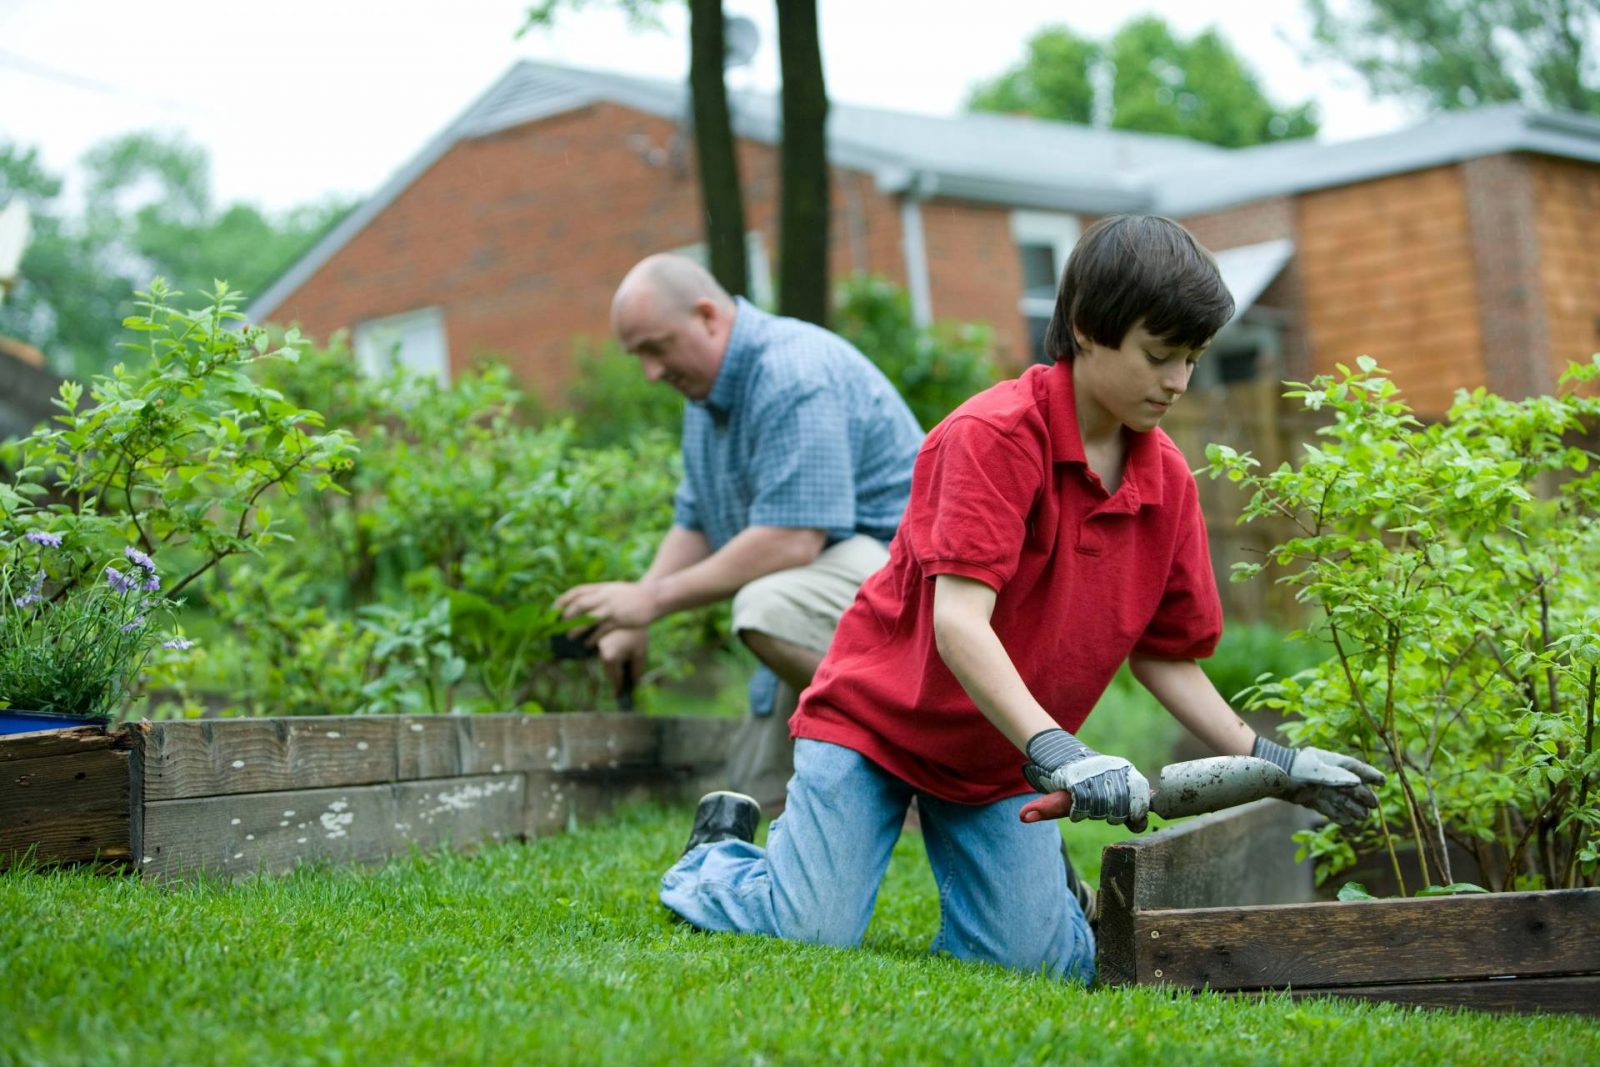 5 simple ways to get your garden ready for Summer